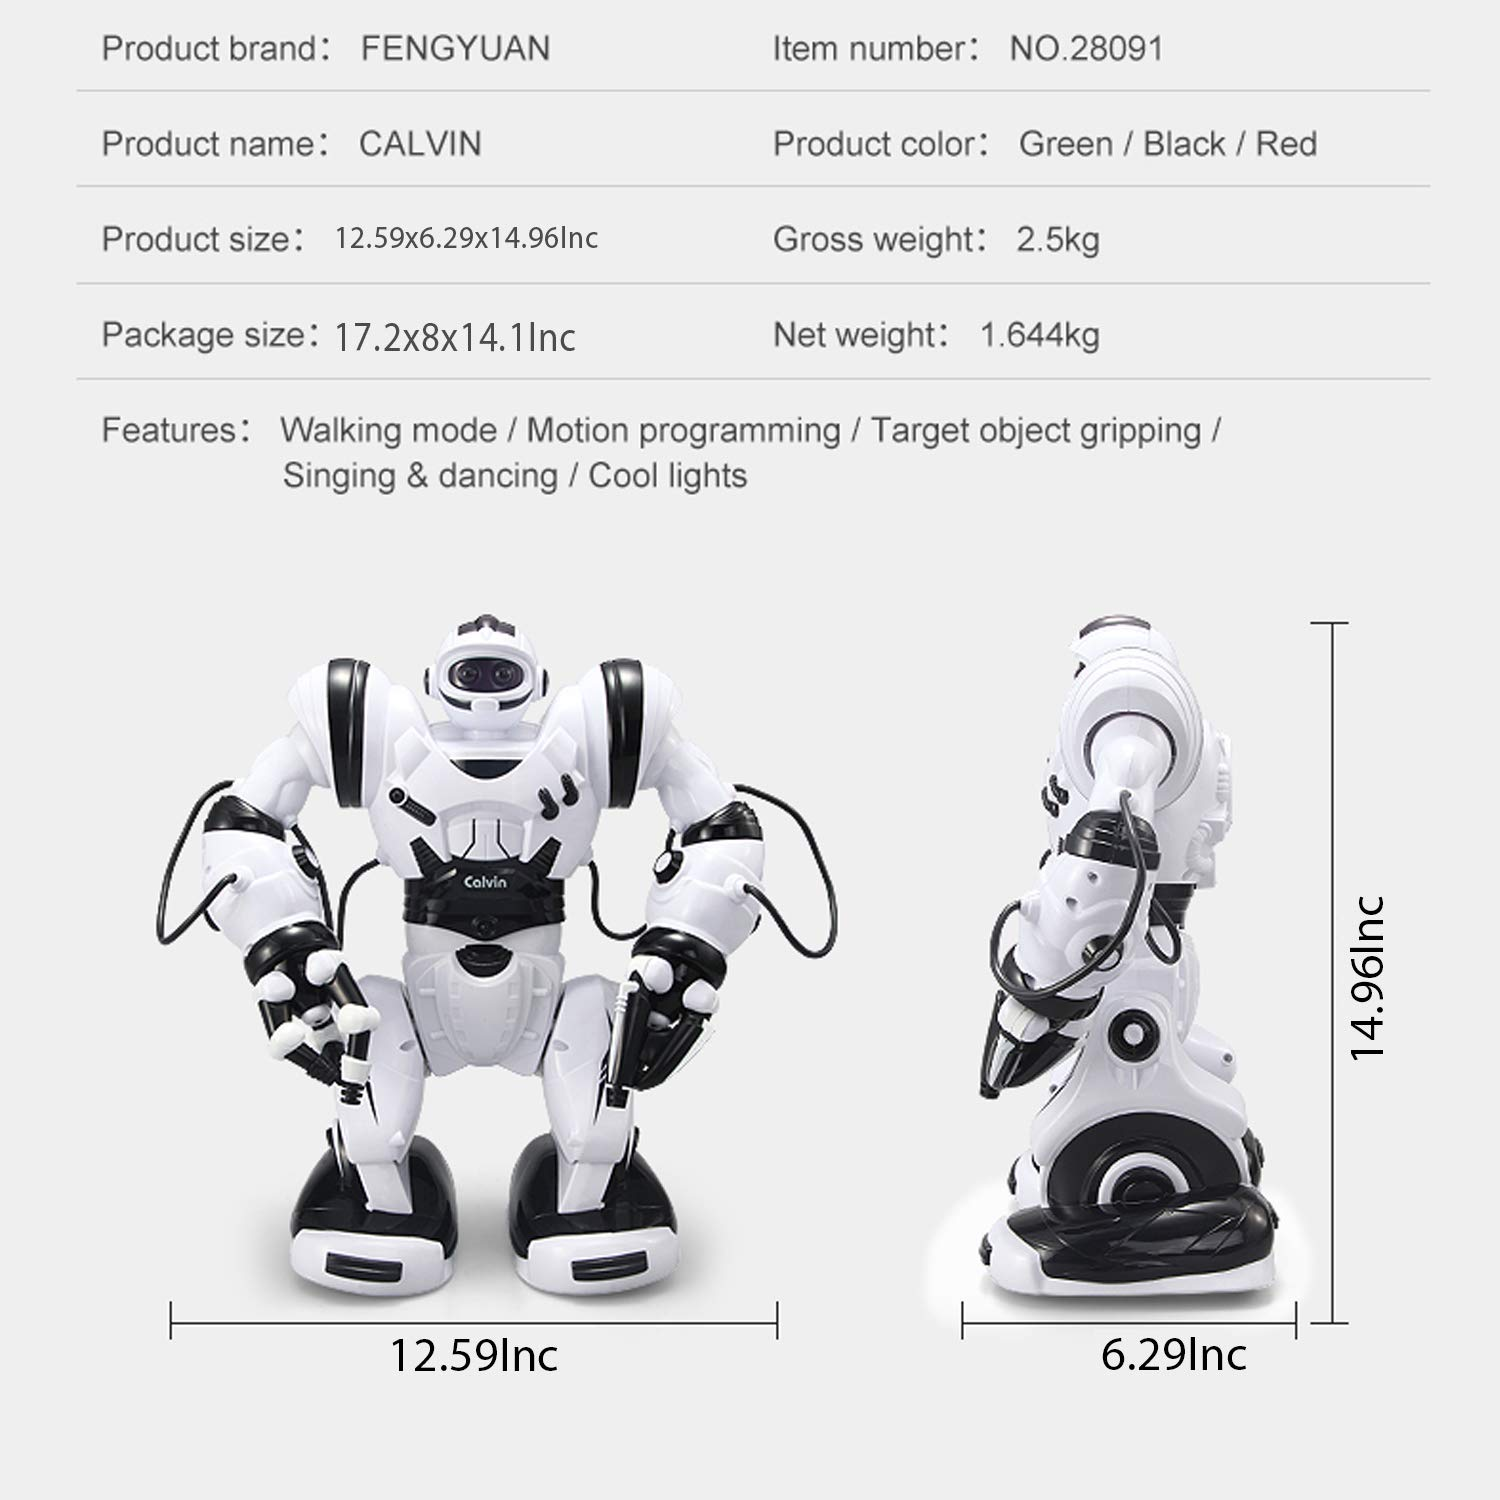 YARMOSHI Remote Control Smart Robot Toy - Big Calvin, Flexible Moving Body, Whirls, Dances. Fun Gift for Girls and Boys Age 5+. by YARMOSHI (Image #7)